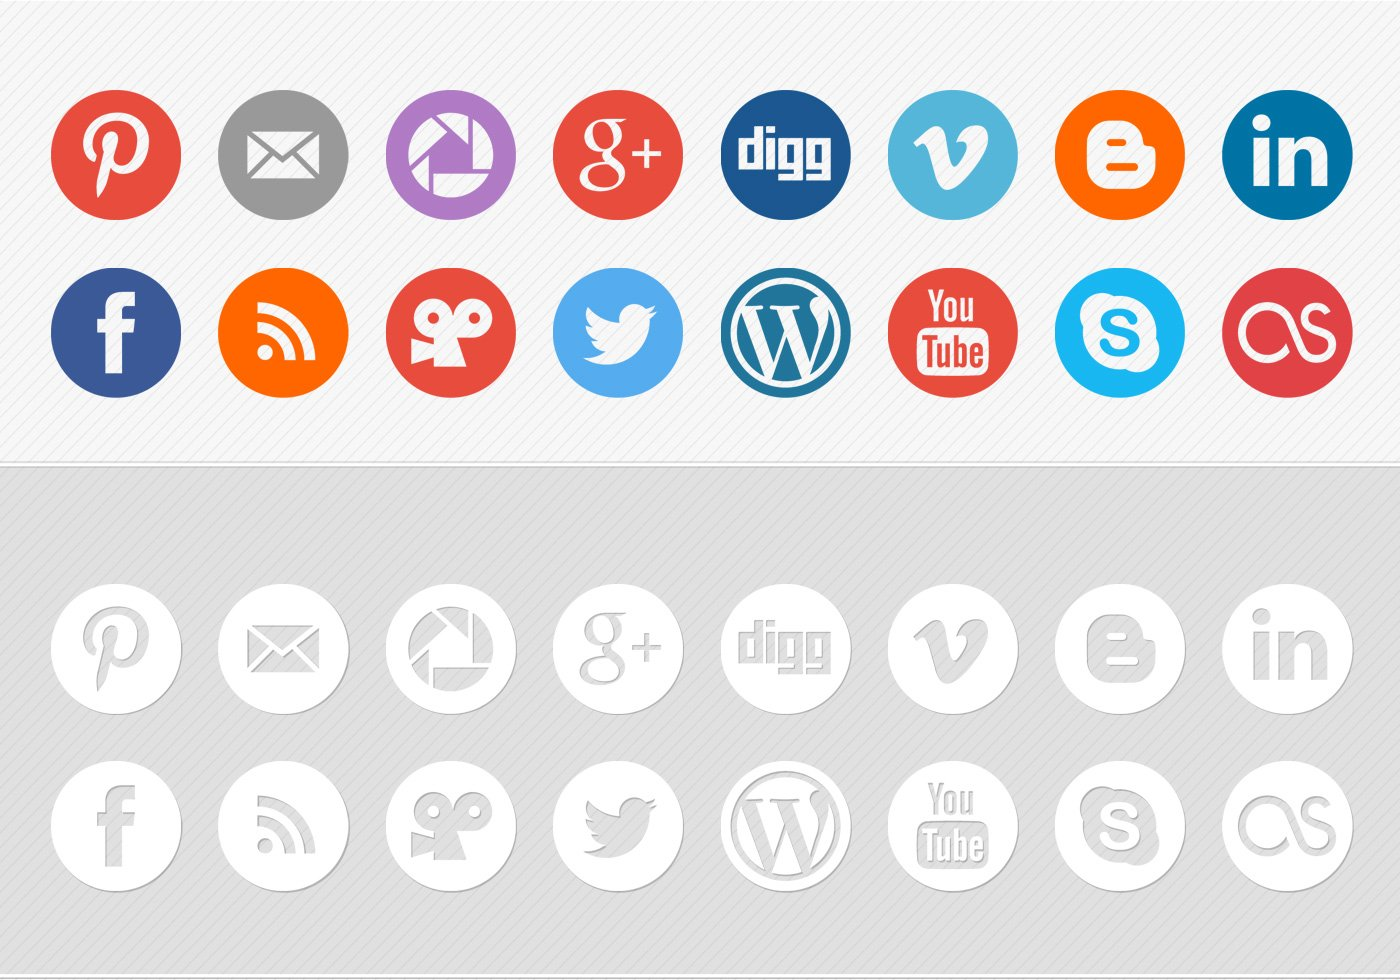 round-social-media-icon-psd-pack-photoshop-psds.jpg